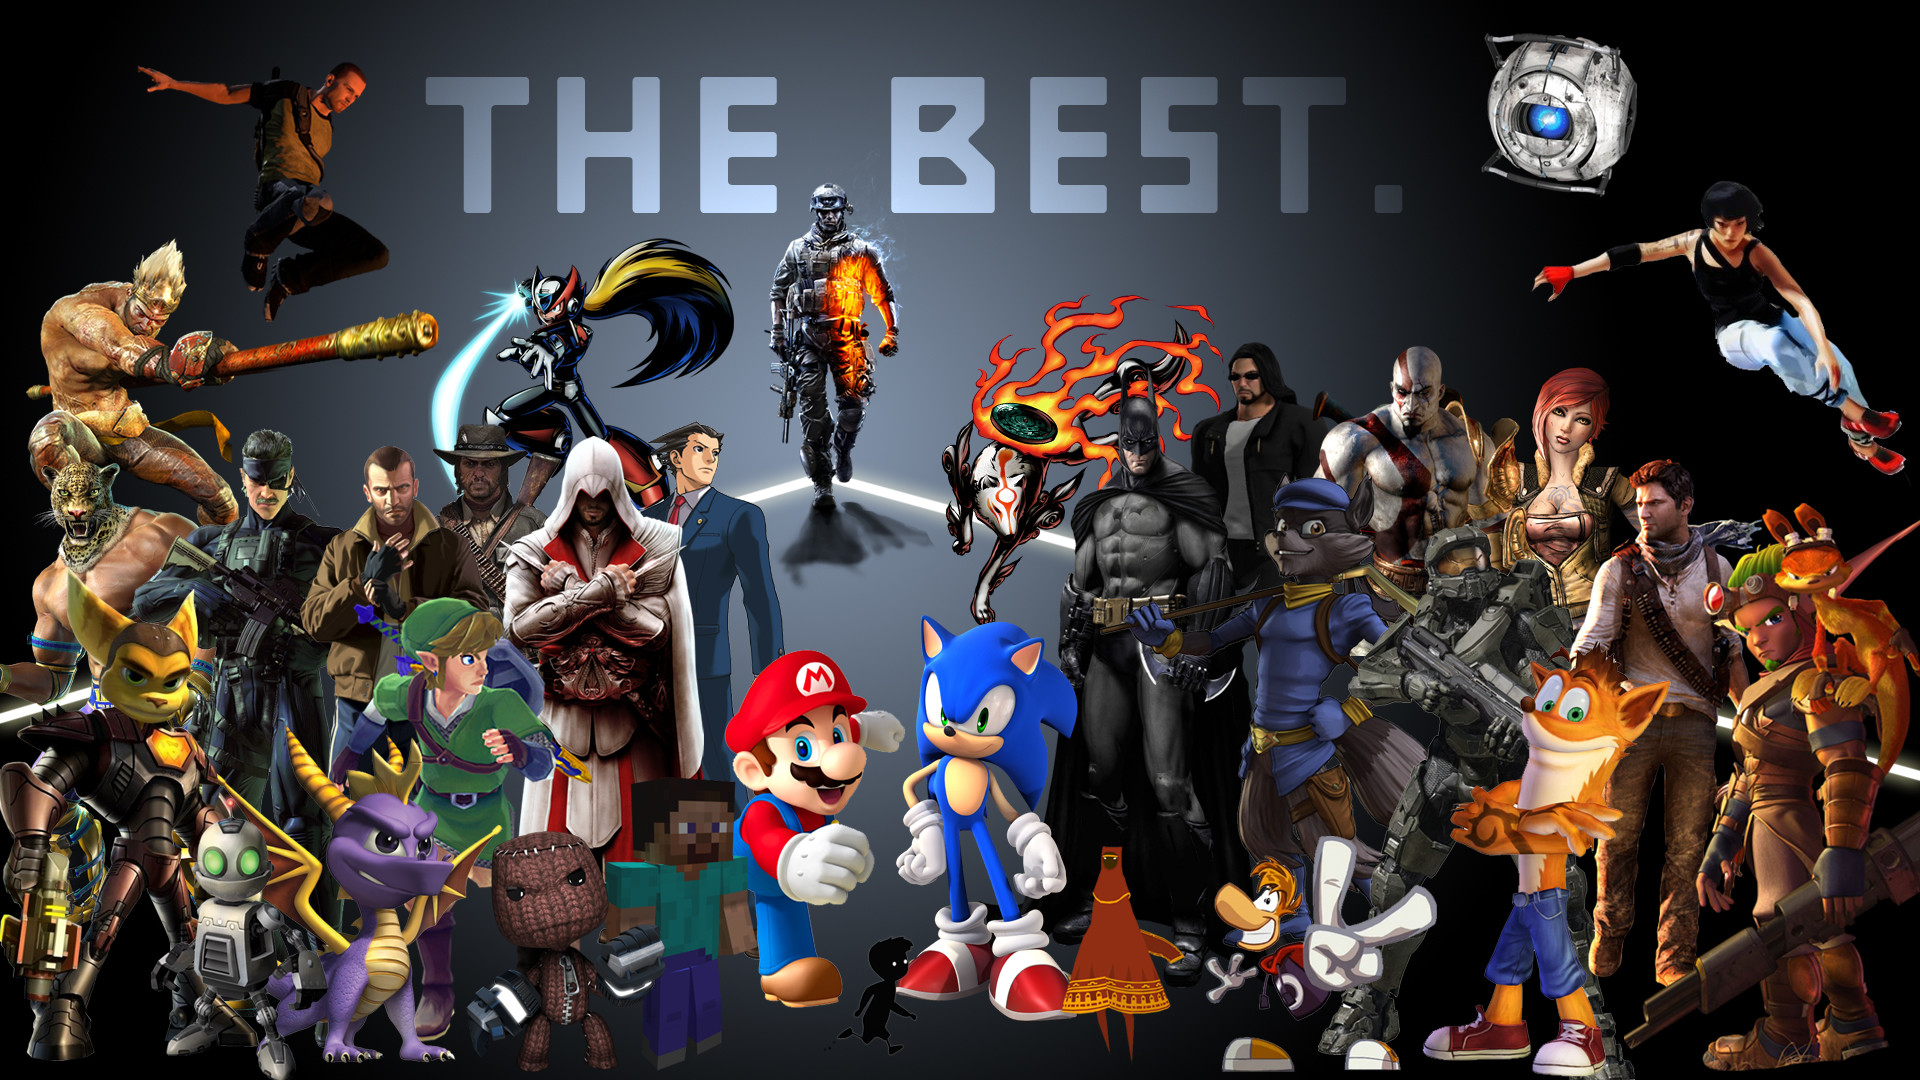 Top 73 Video Game Songs / Music of All Time